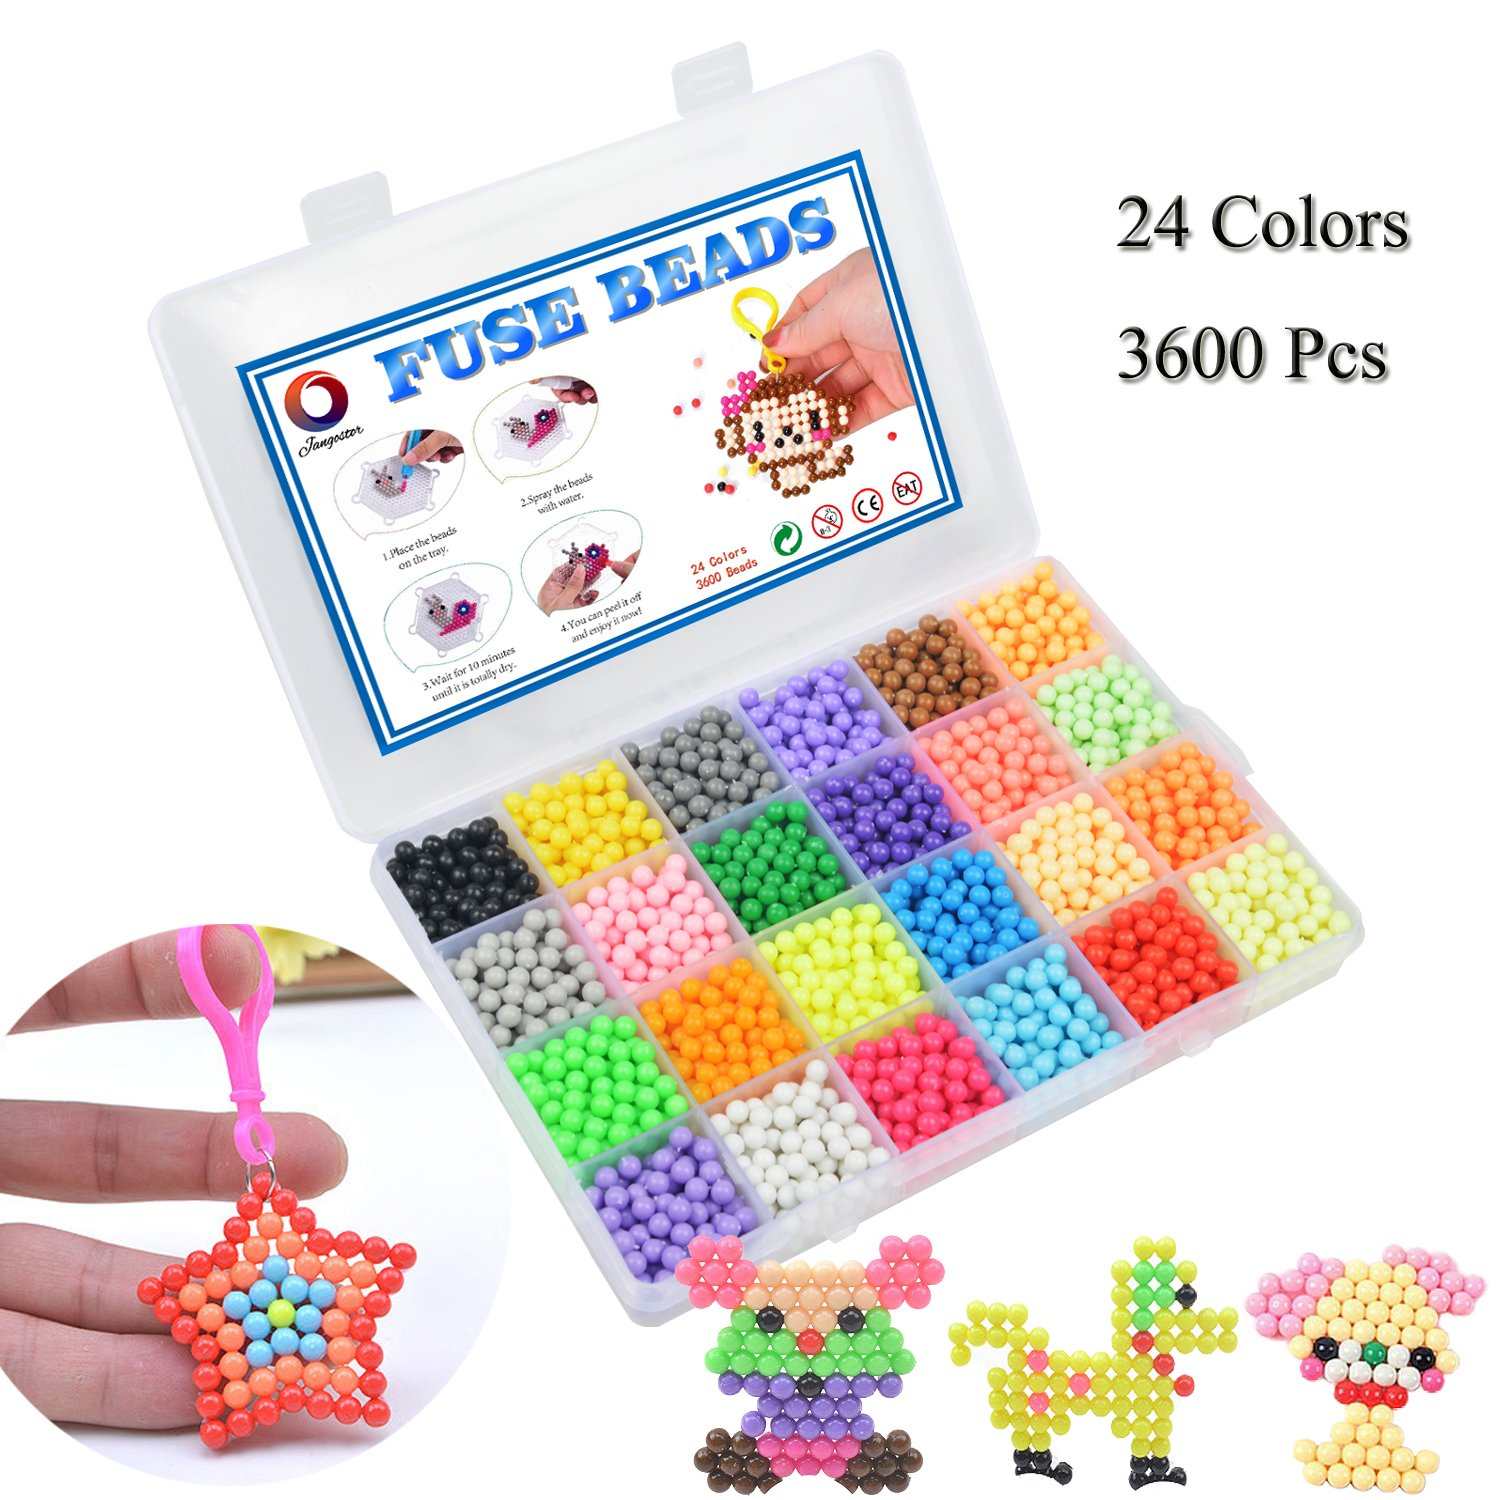 Jangostor Water Fuse Beads Kit 3600 Beads 24 Colors Mega Bead Refill Beads Educational Toys for Kids Beginners Activity Pack